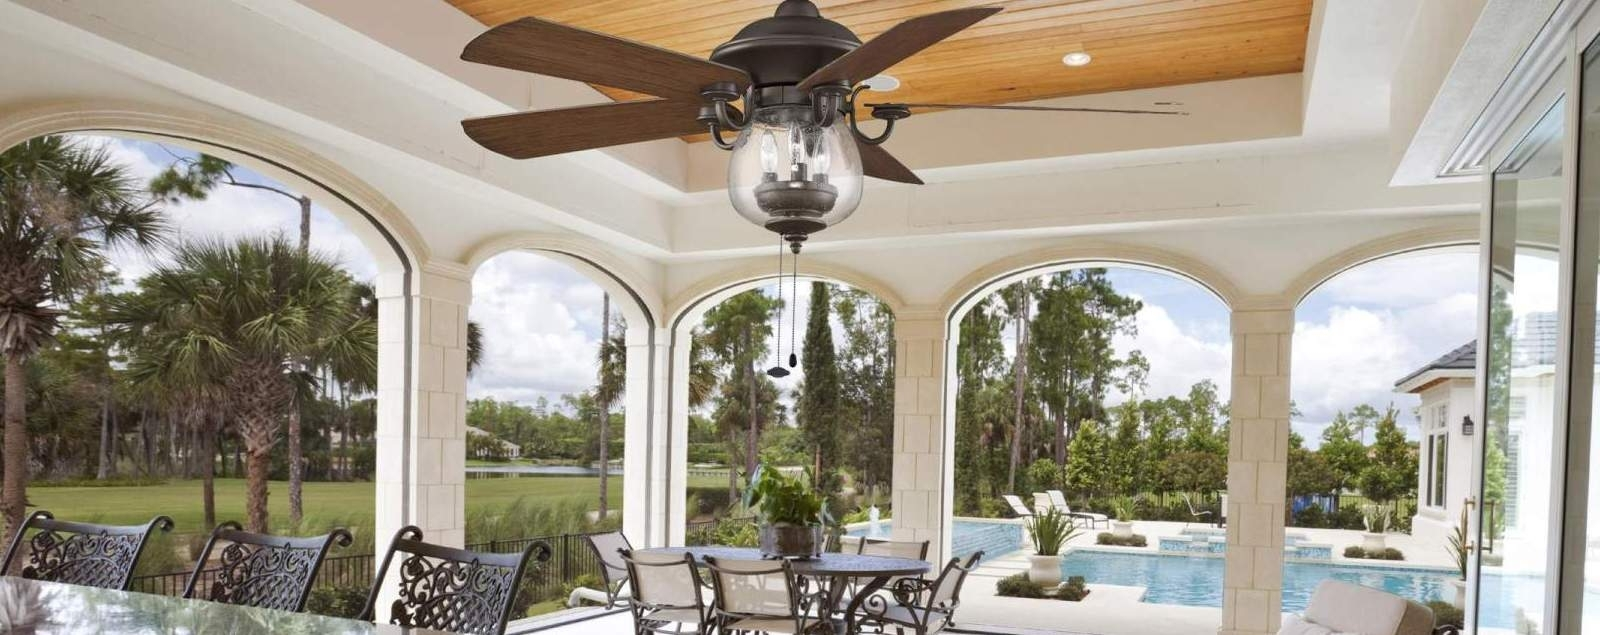 High Volume Outdoor Ceiling Fans Within Popular Outdoor Ceiling Fans – Shop Wet, Dry, And Damp Rated Outdoor Fans (View 10 of 20)